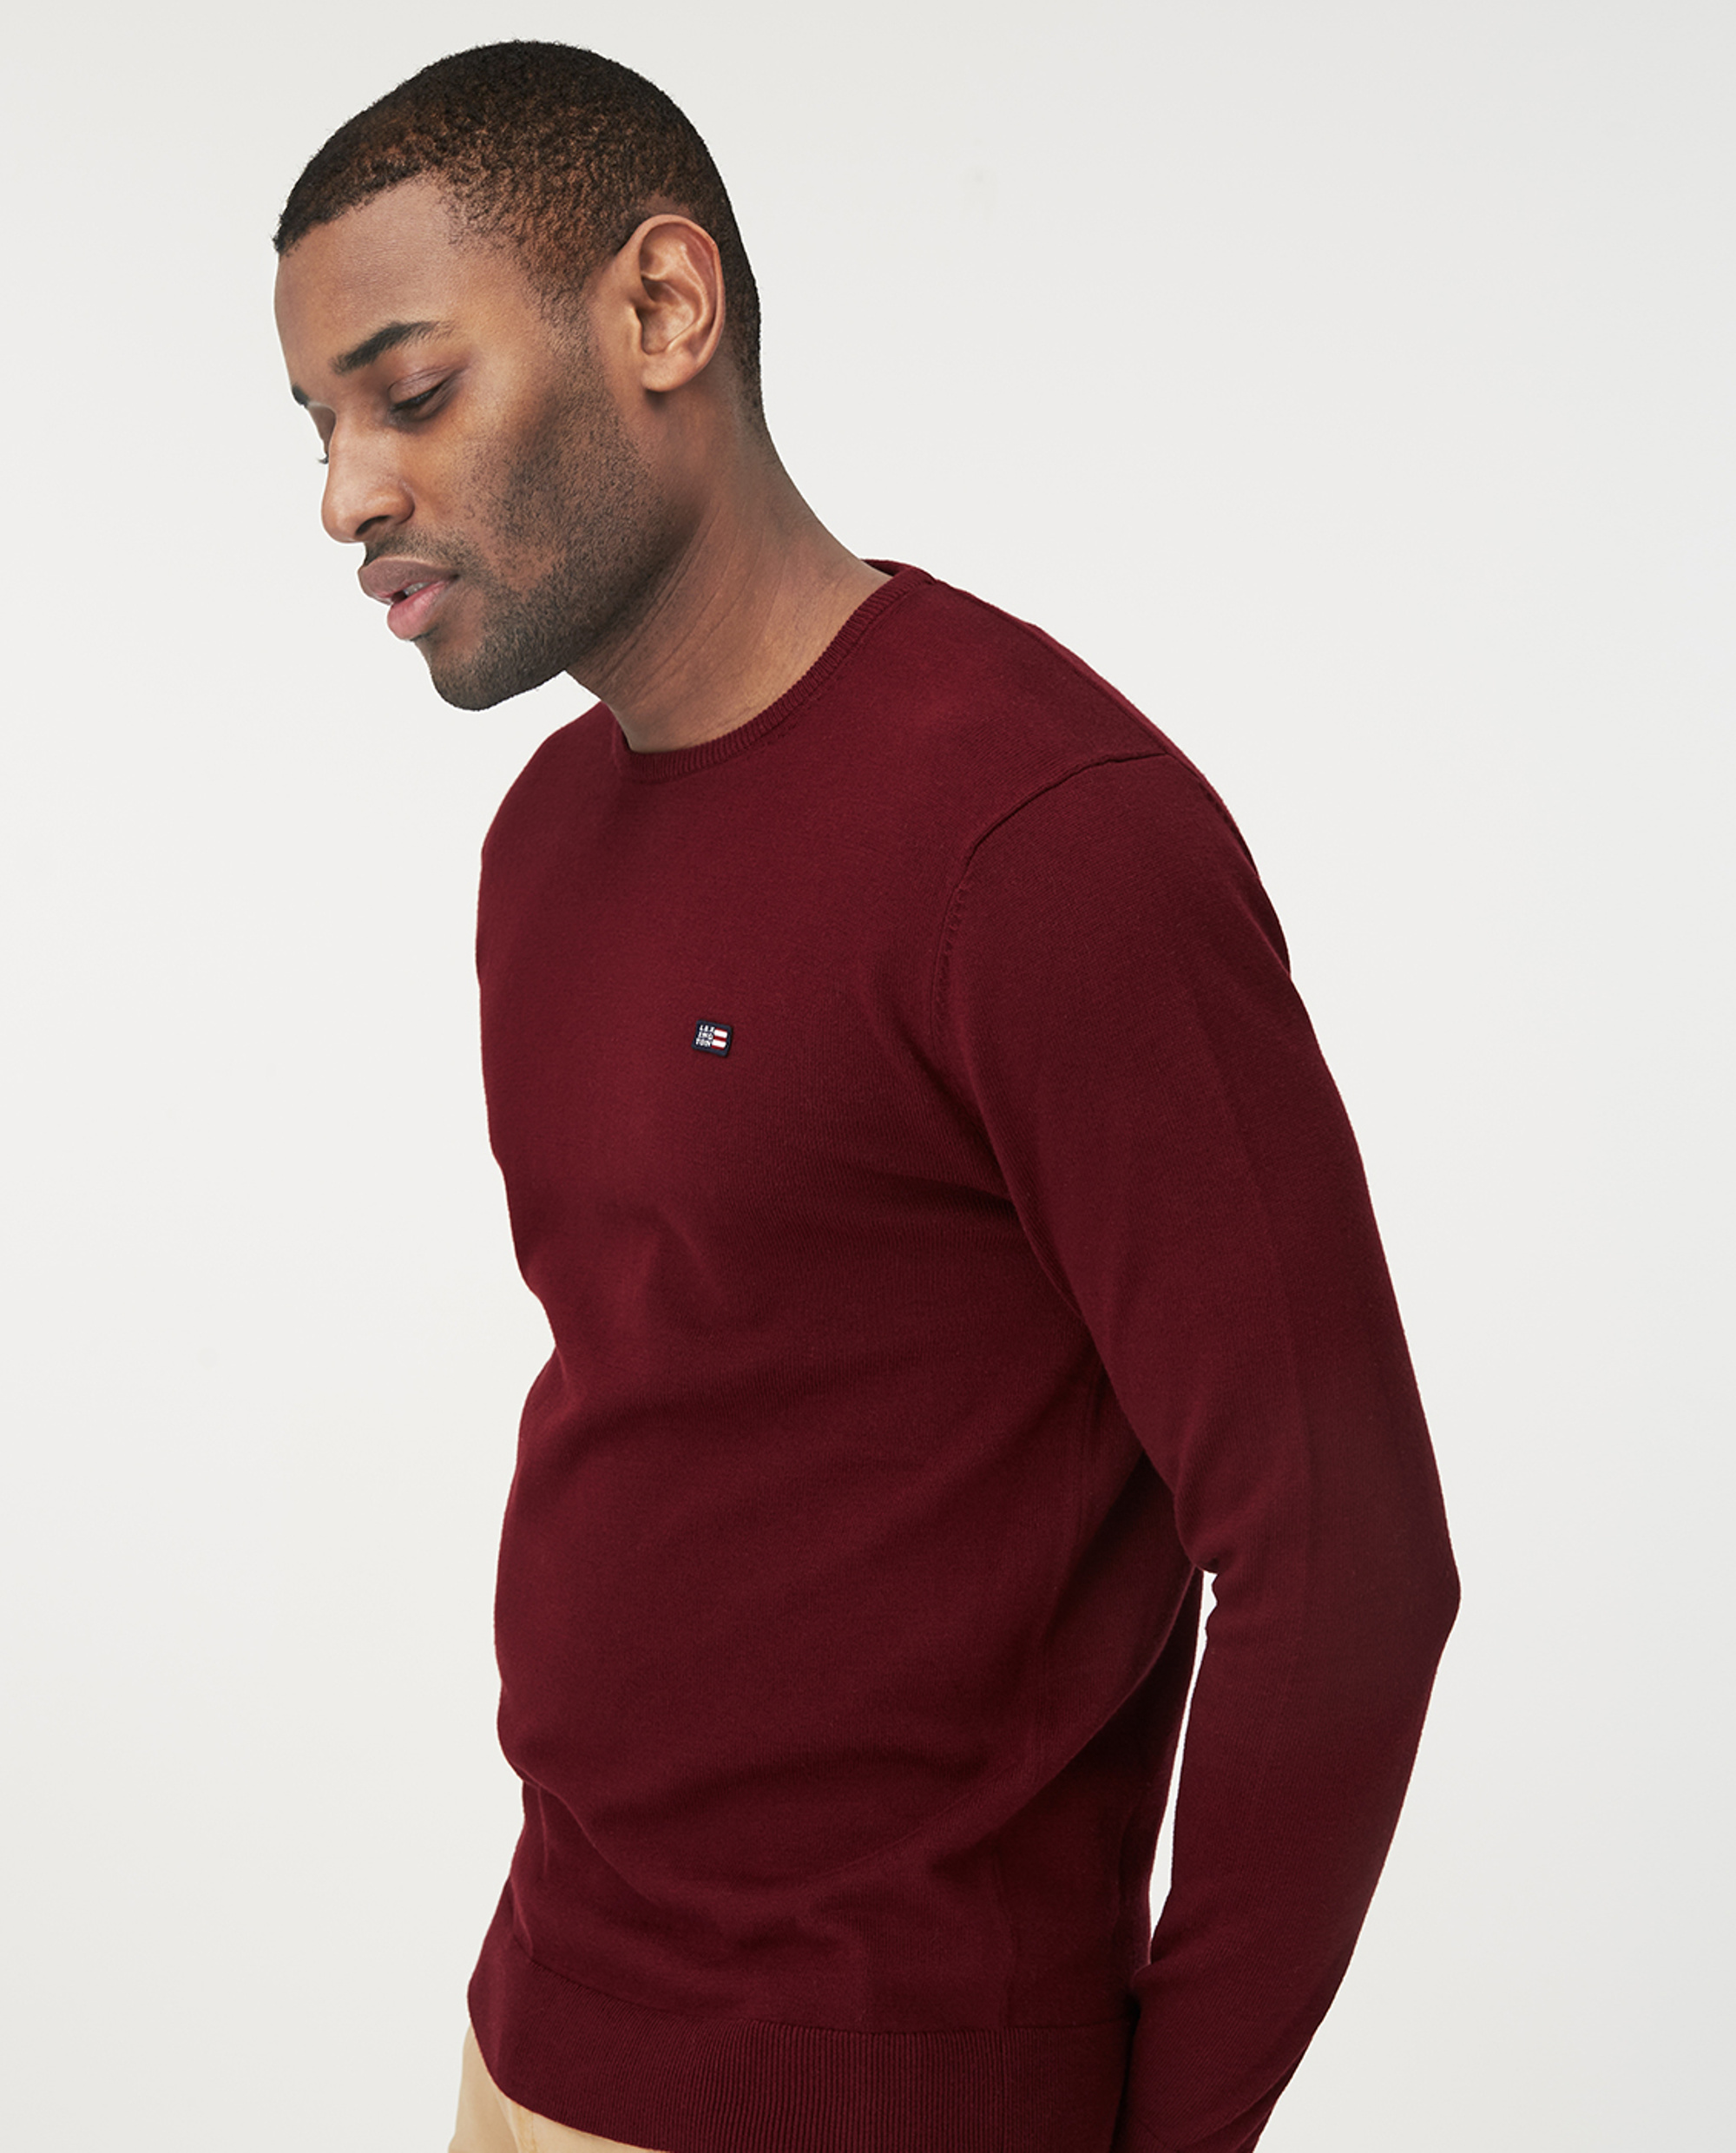 Bradley Crew Neck Sweater, Dark Red